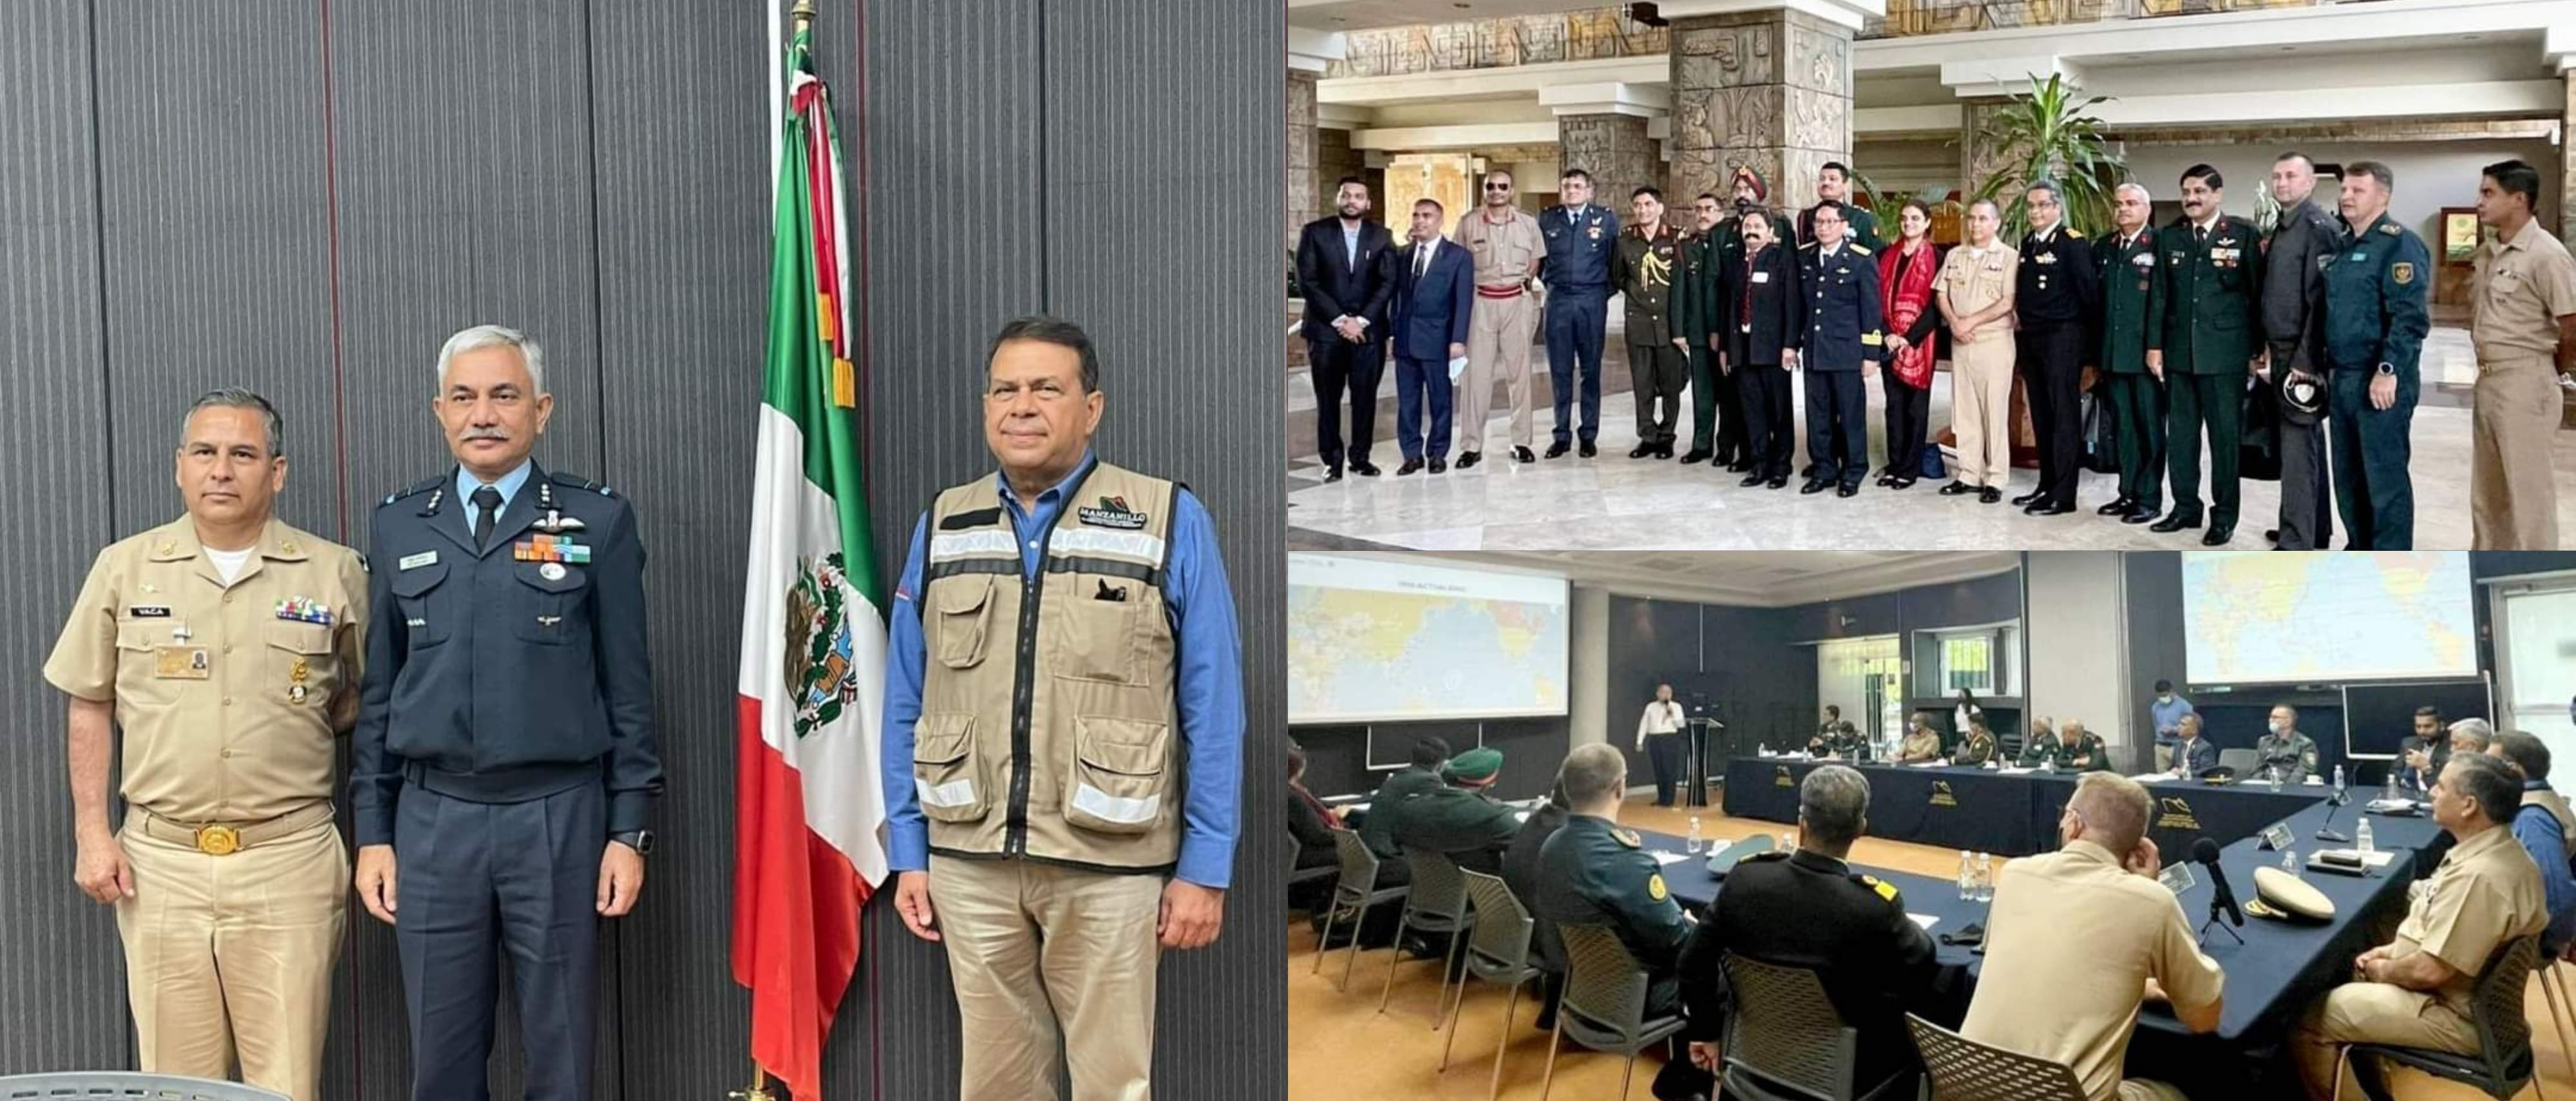 National Defense College (NDC) delegation from India visited the Mexican naval facility at Port Manzanillo. They were briefed through a presentation on the history, management, strategic and commercial importance of Port Manzanillo.